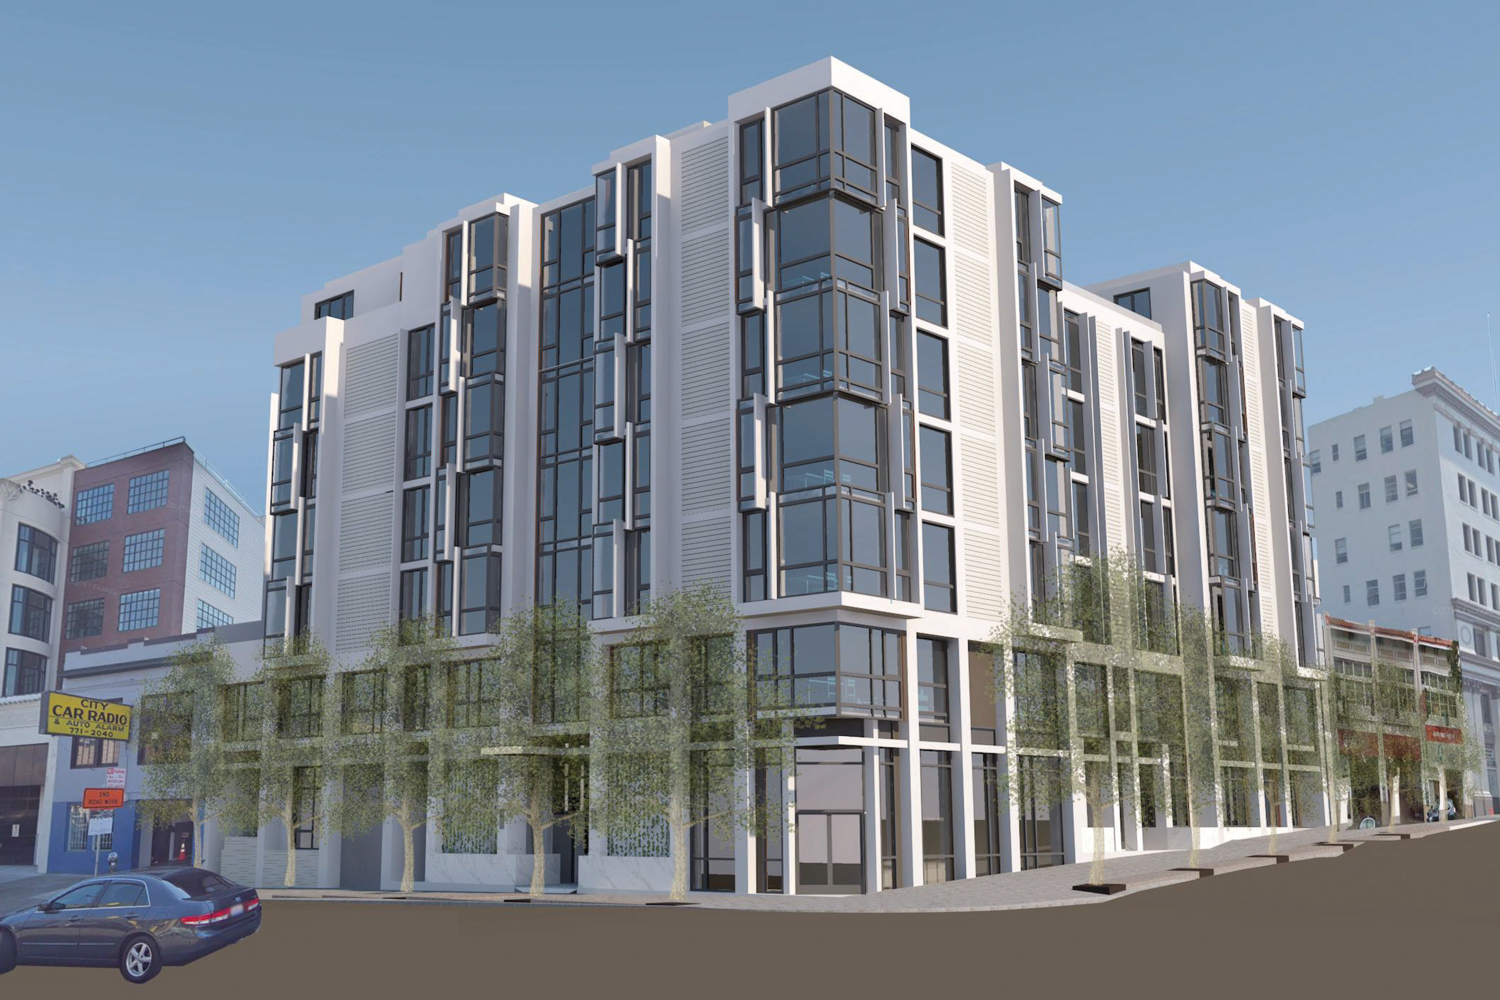 2050 Van Ness Avenue, rendering by ib+a Architecture